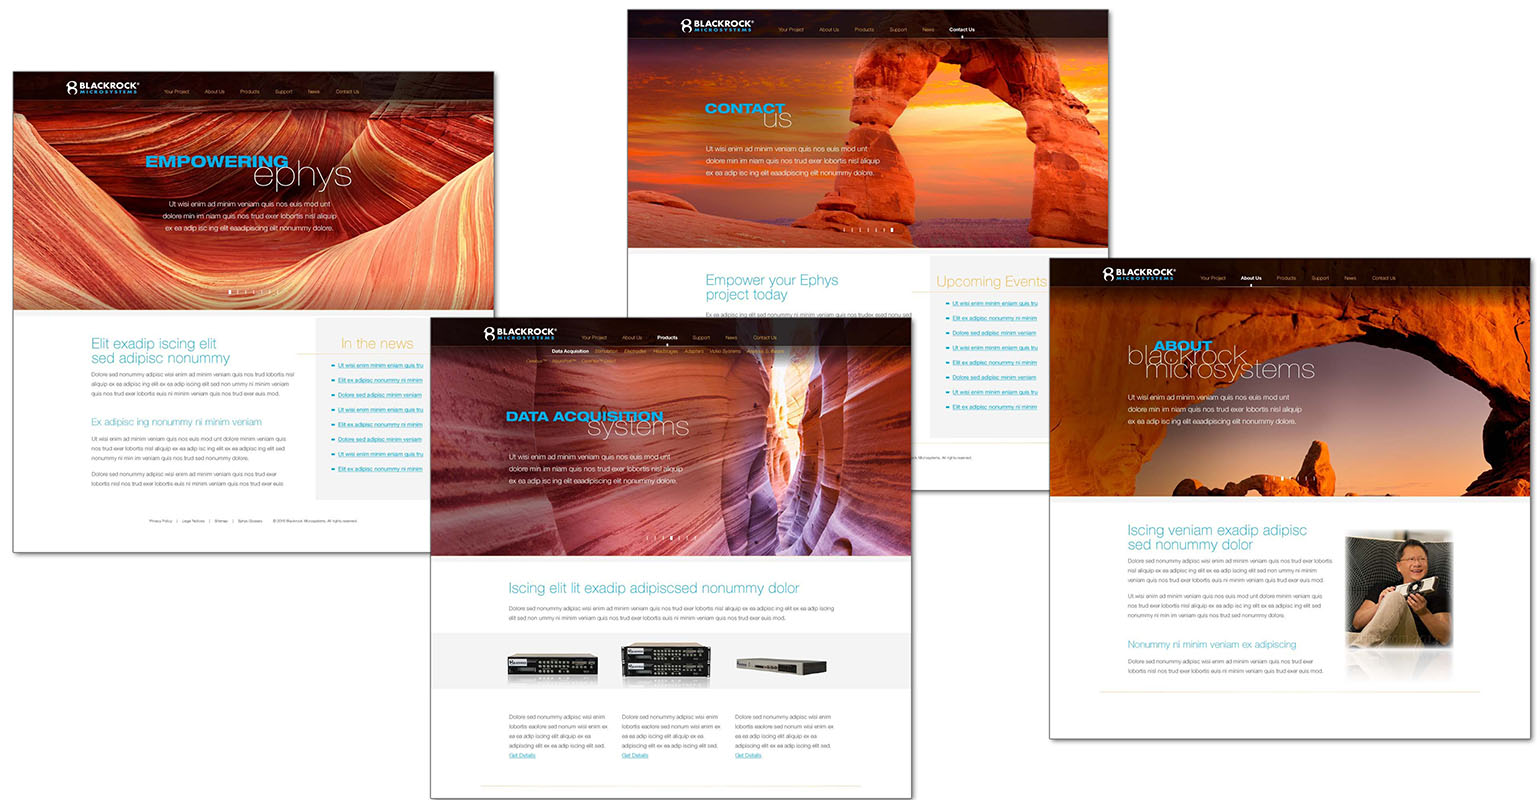 website design created for Blackrock Microsystems by airt group